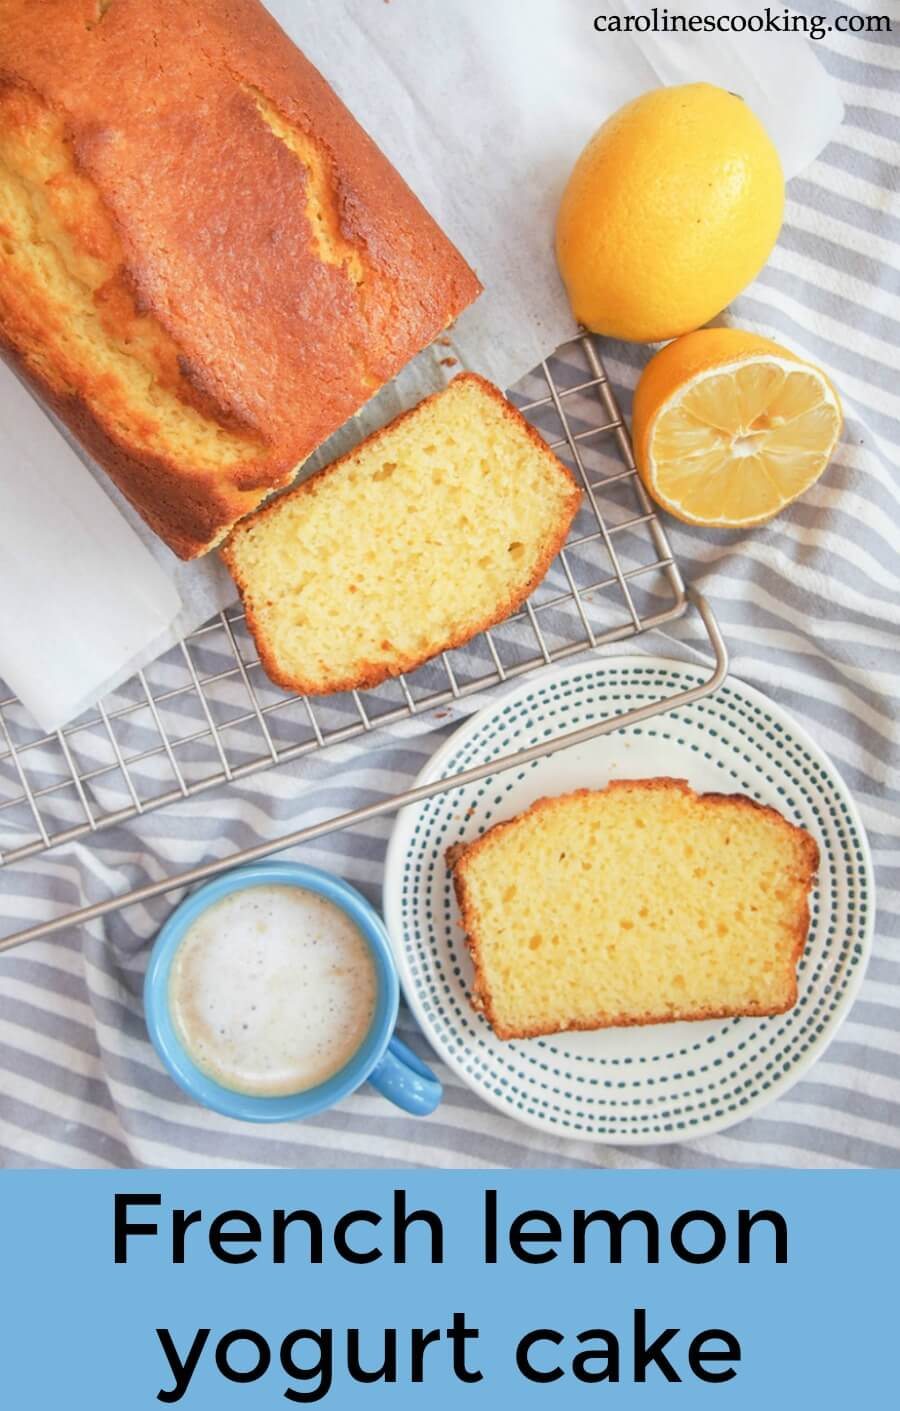 This French lemon yogurt cake is so easy to make and the result is one incredibly delicious, moist, light and flavorful loaf that works for so many occasions. It's no wonder this is on every French cook's list.#yogurtcake #lemonyogurtcake #frenchyogurtcake #easybaking